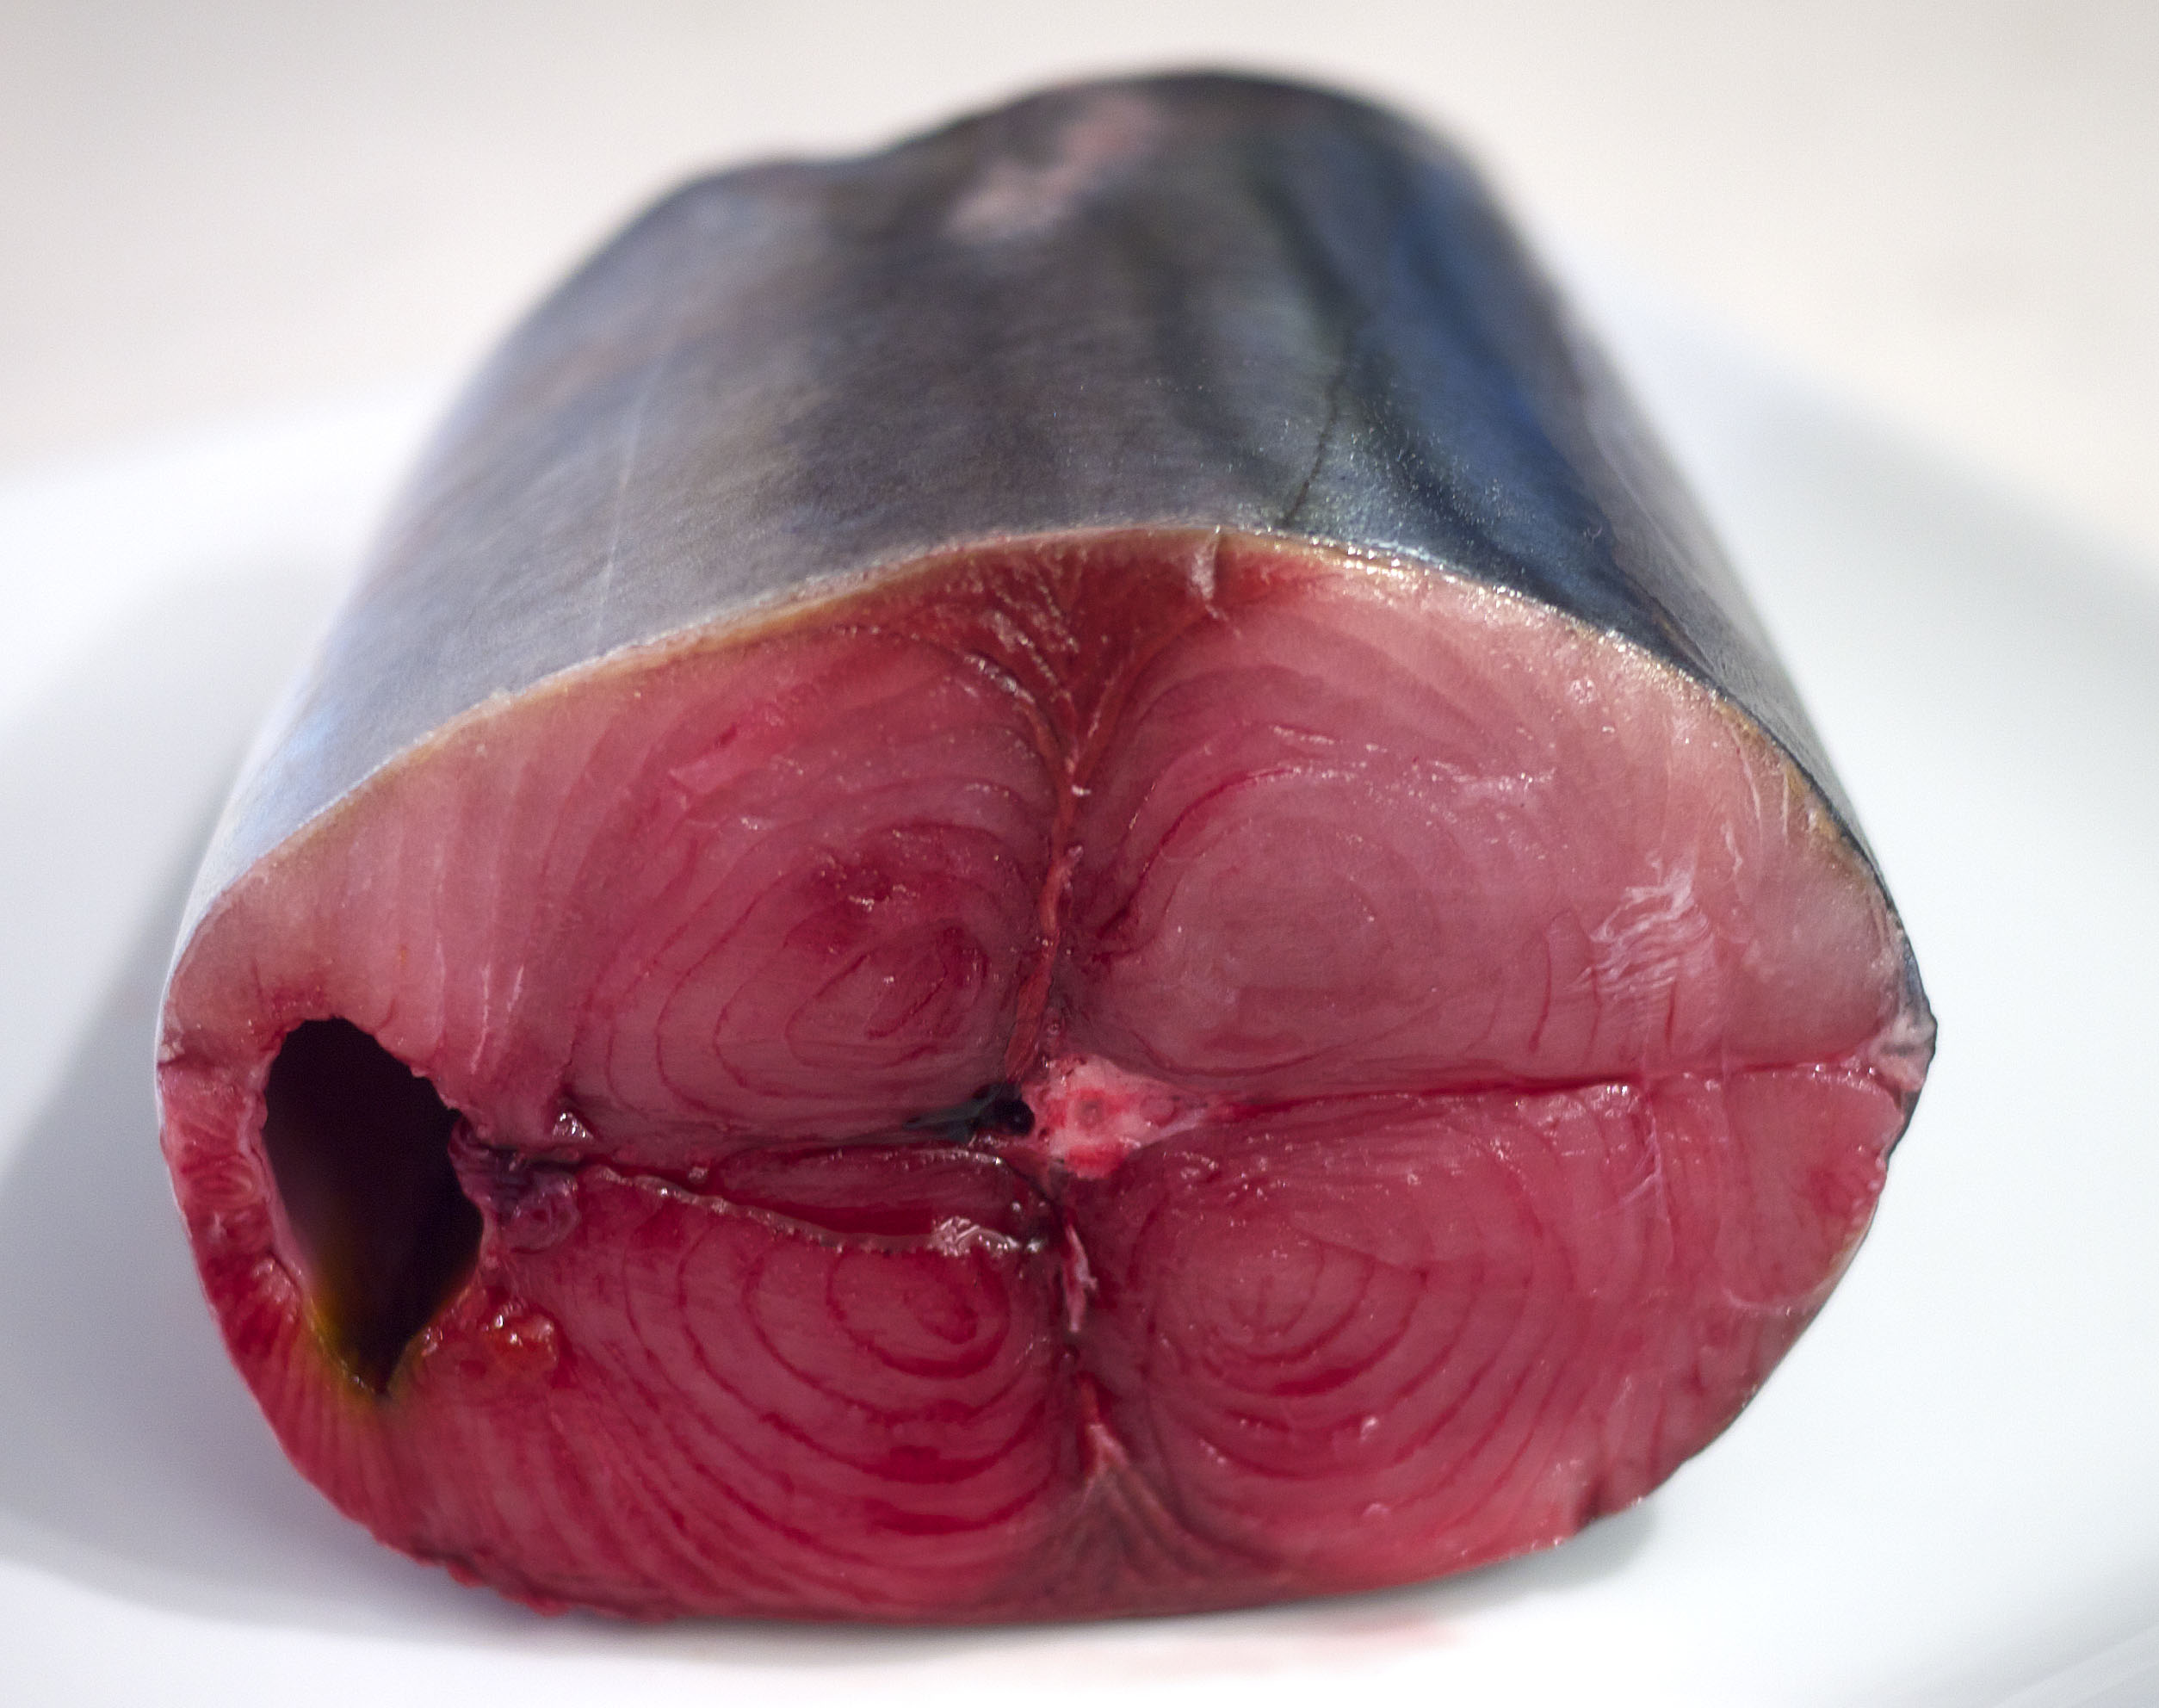 Marriage-breaker: In times past, Japanese men prized katsuo (bonito, or skipjack tuna) more highly than their wives.   MAKIKO ITOH